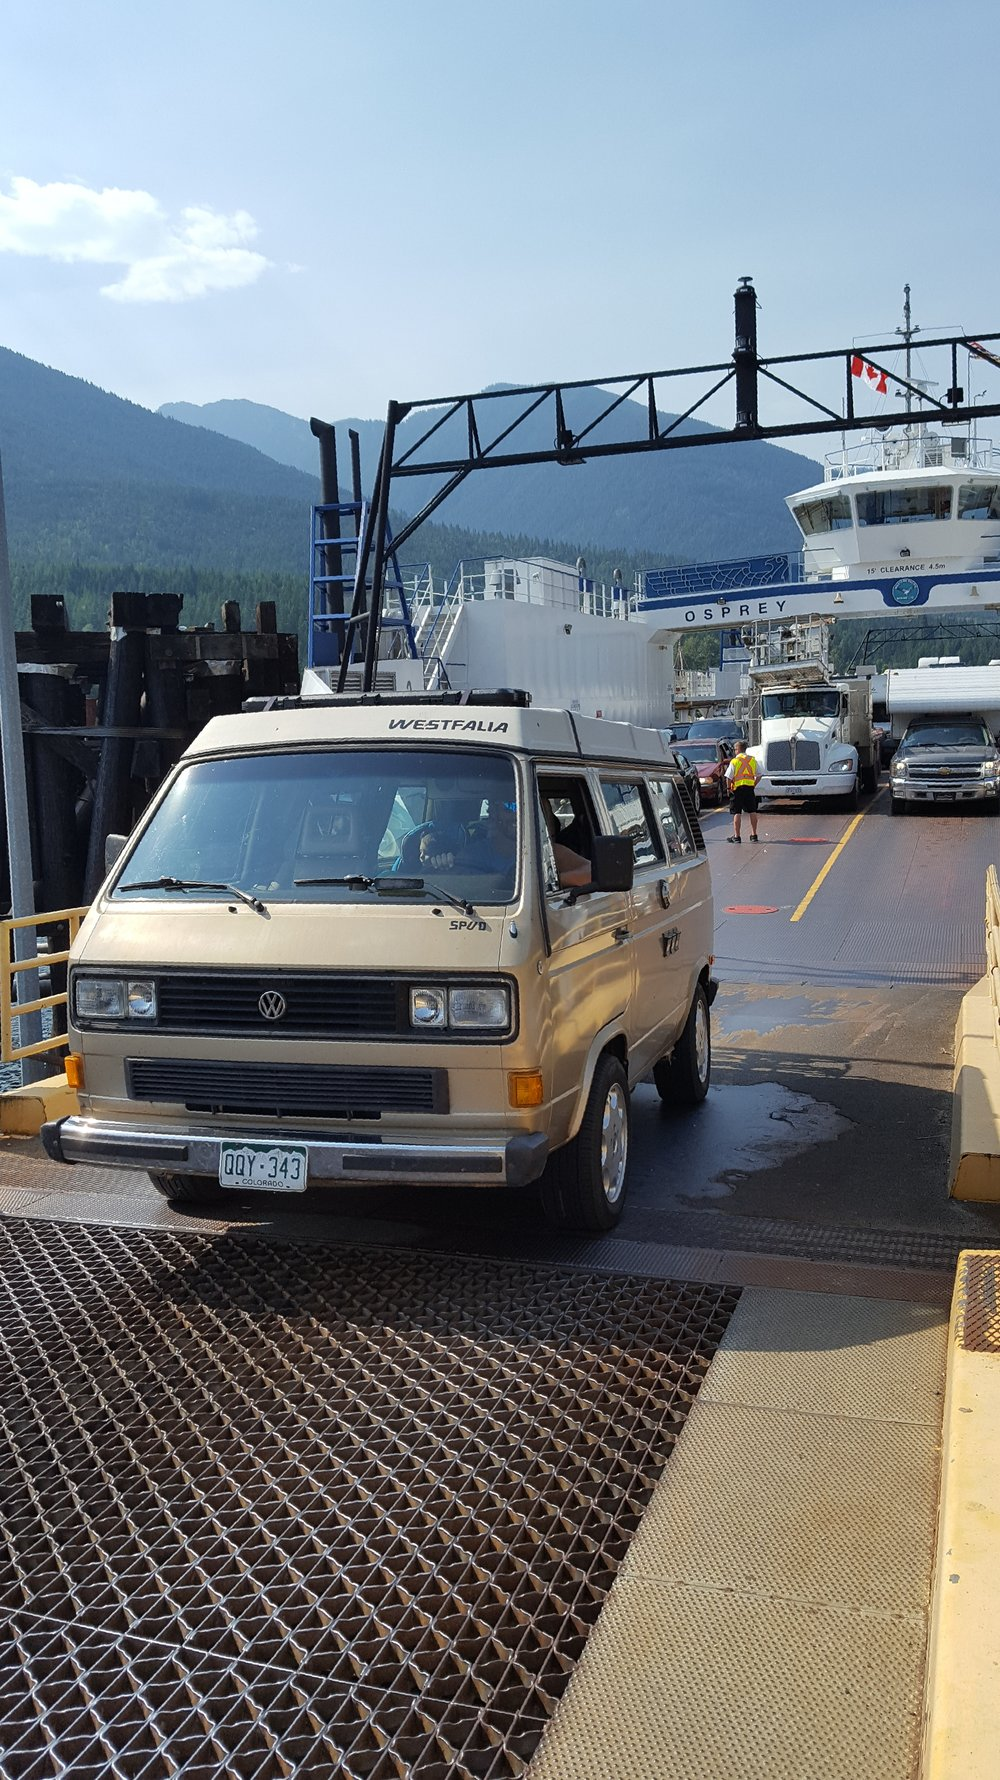 You can ride this ferry with your car FOR FREE.  Um, yes.